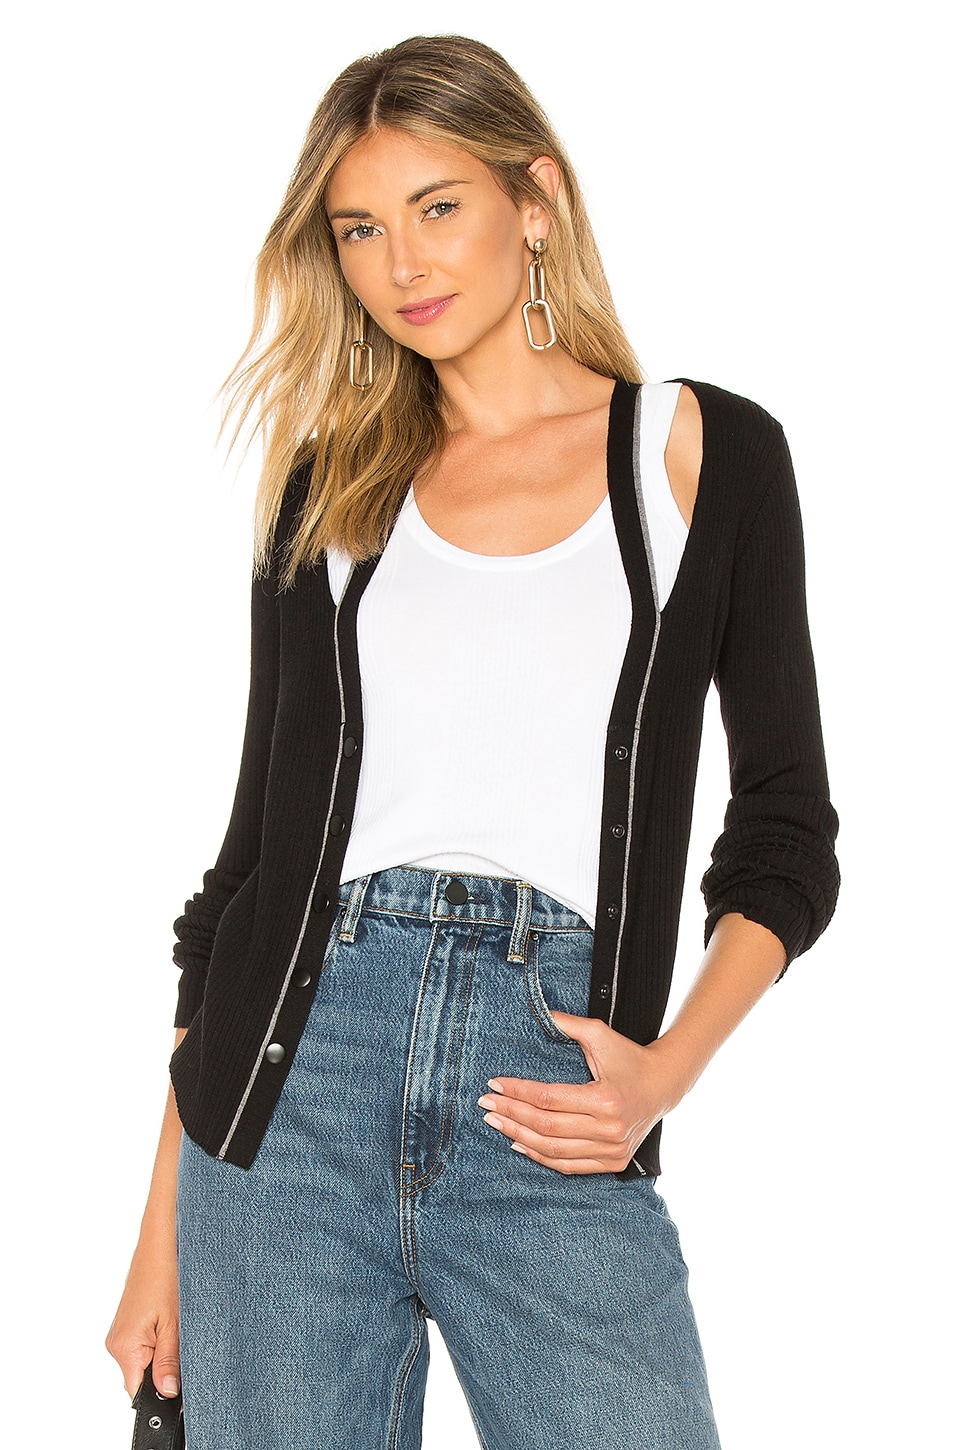 T by Alexander Wang Layered Fitted Cardigan in Black & White